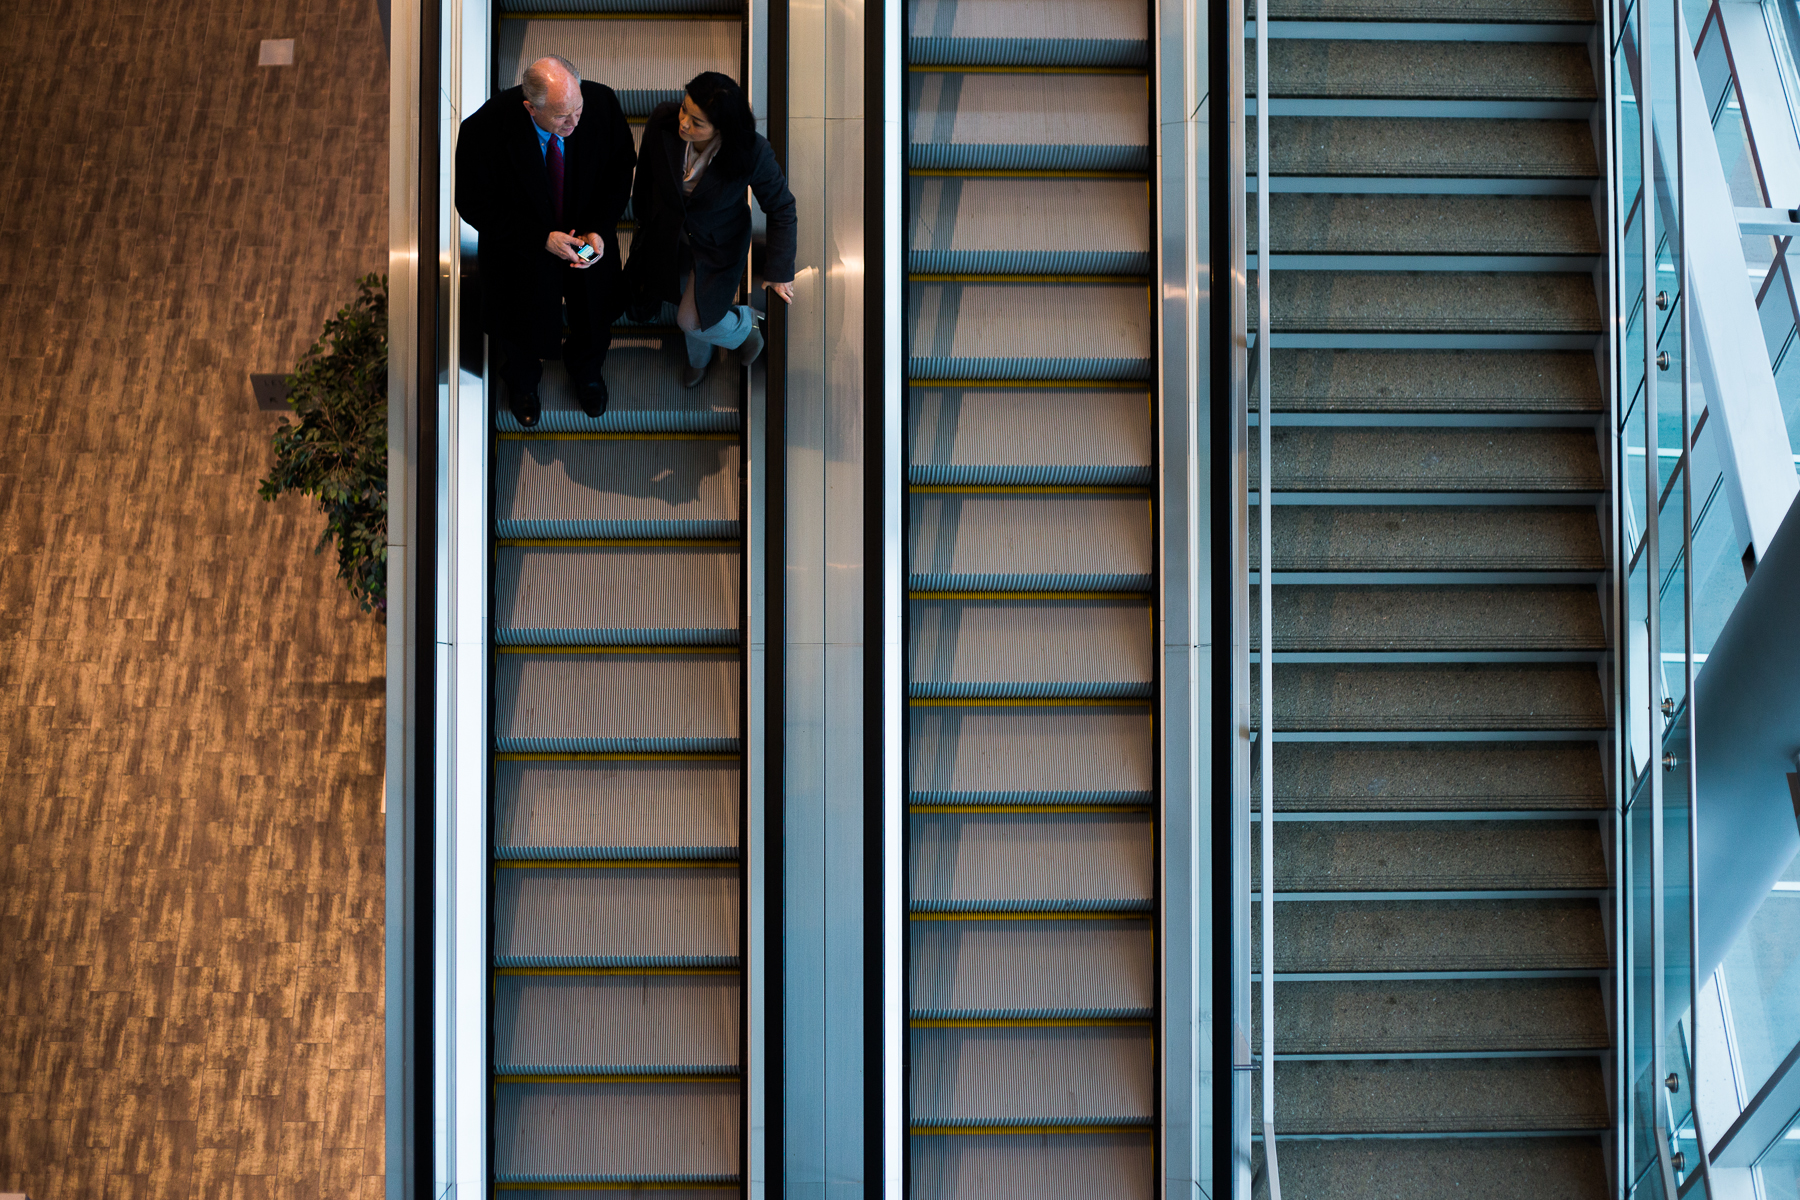 Alaska Governor Elect Bill Walker (left) and Spokesperson Grace Jang left the Dena'ina Center after Walker gave remarks and mingled with attendees at the 35th annual Alaska Resources Conference in Anchorage, Alaska on Thursday, November 20, 2014.